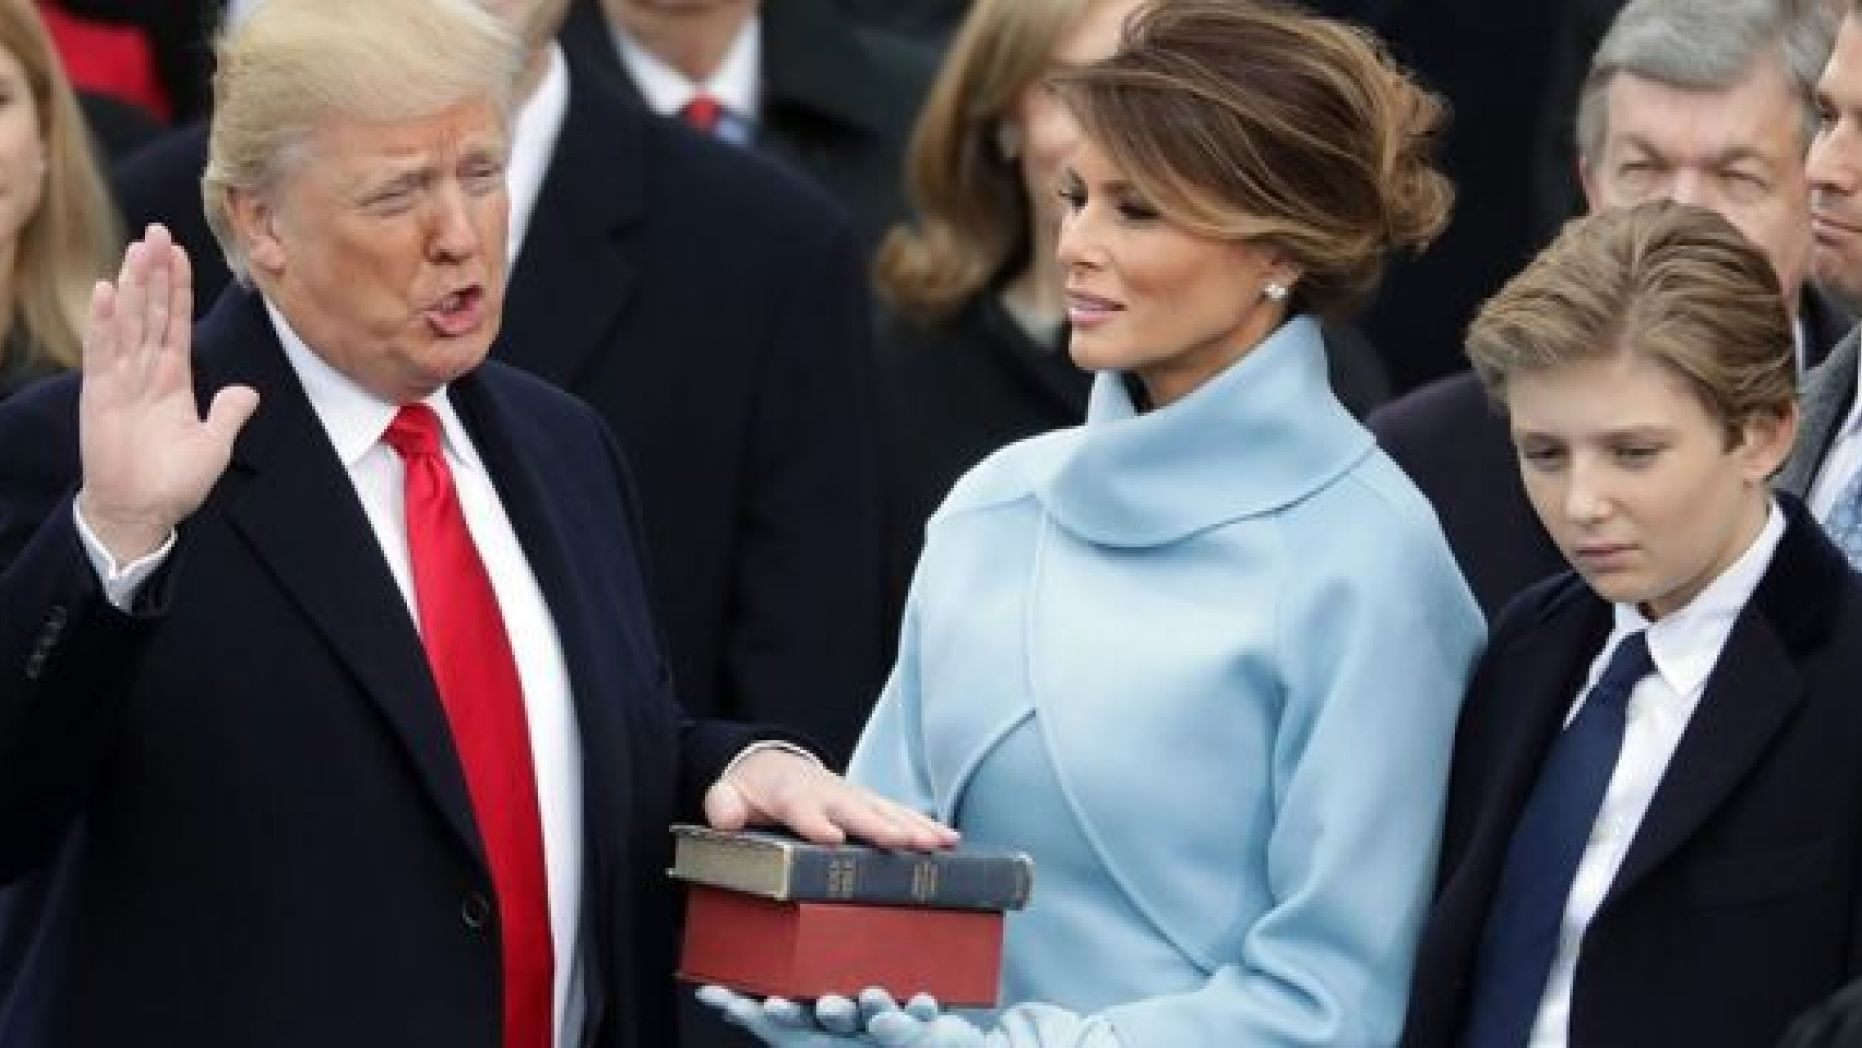 President DonaldTrump and first lady Melania Trump, seen here at the 2017 inauguration, were nominated for Razzie awards. (Chip Somodevilla/Getty Images, File)